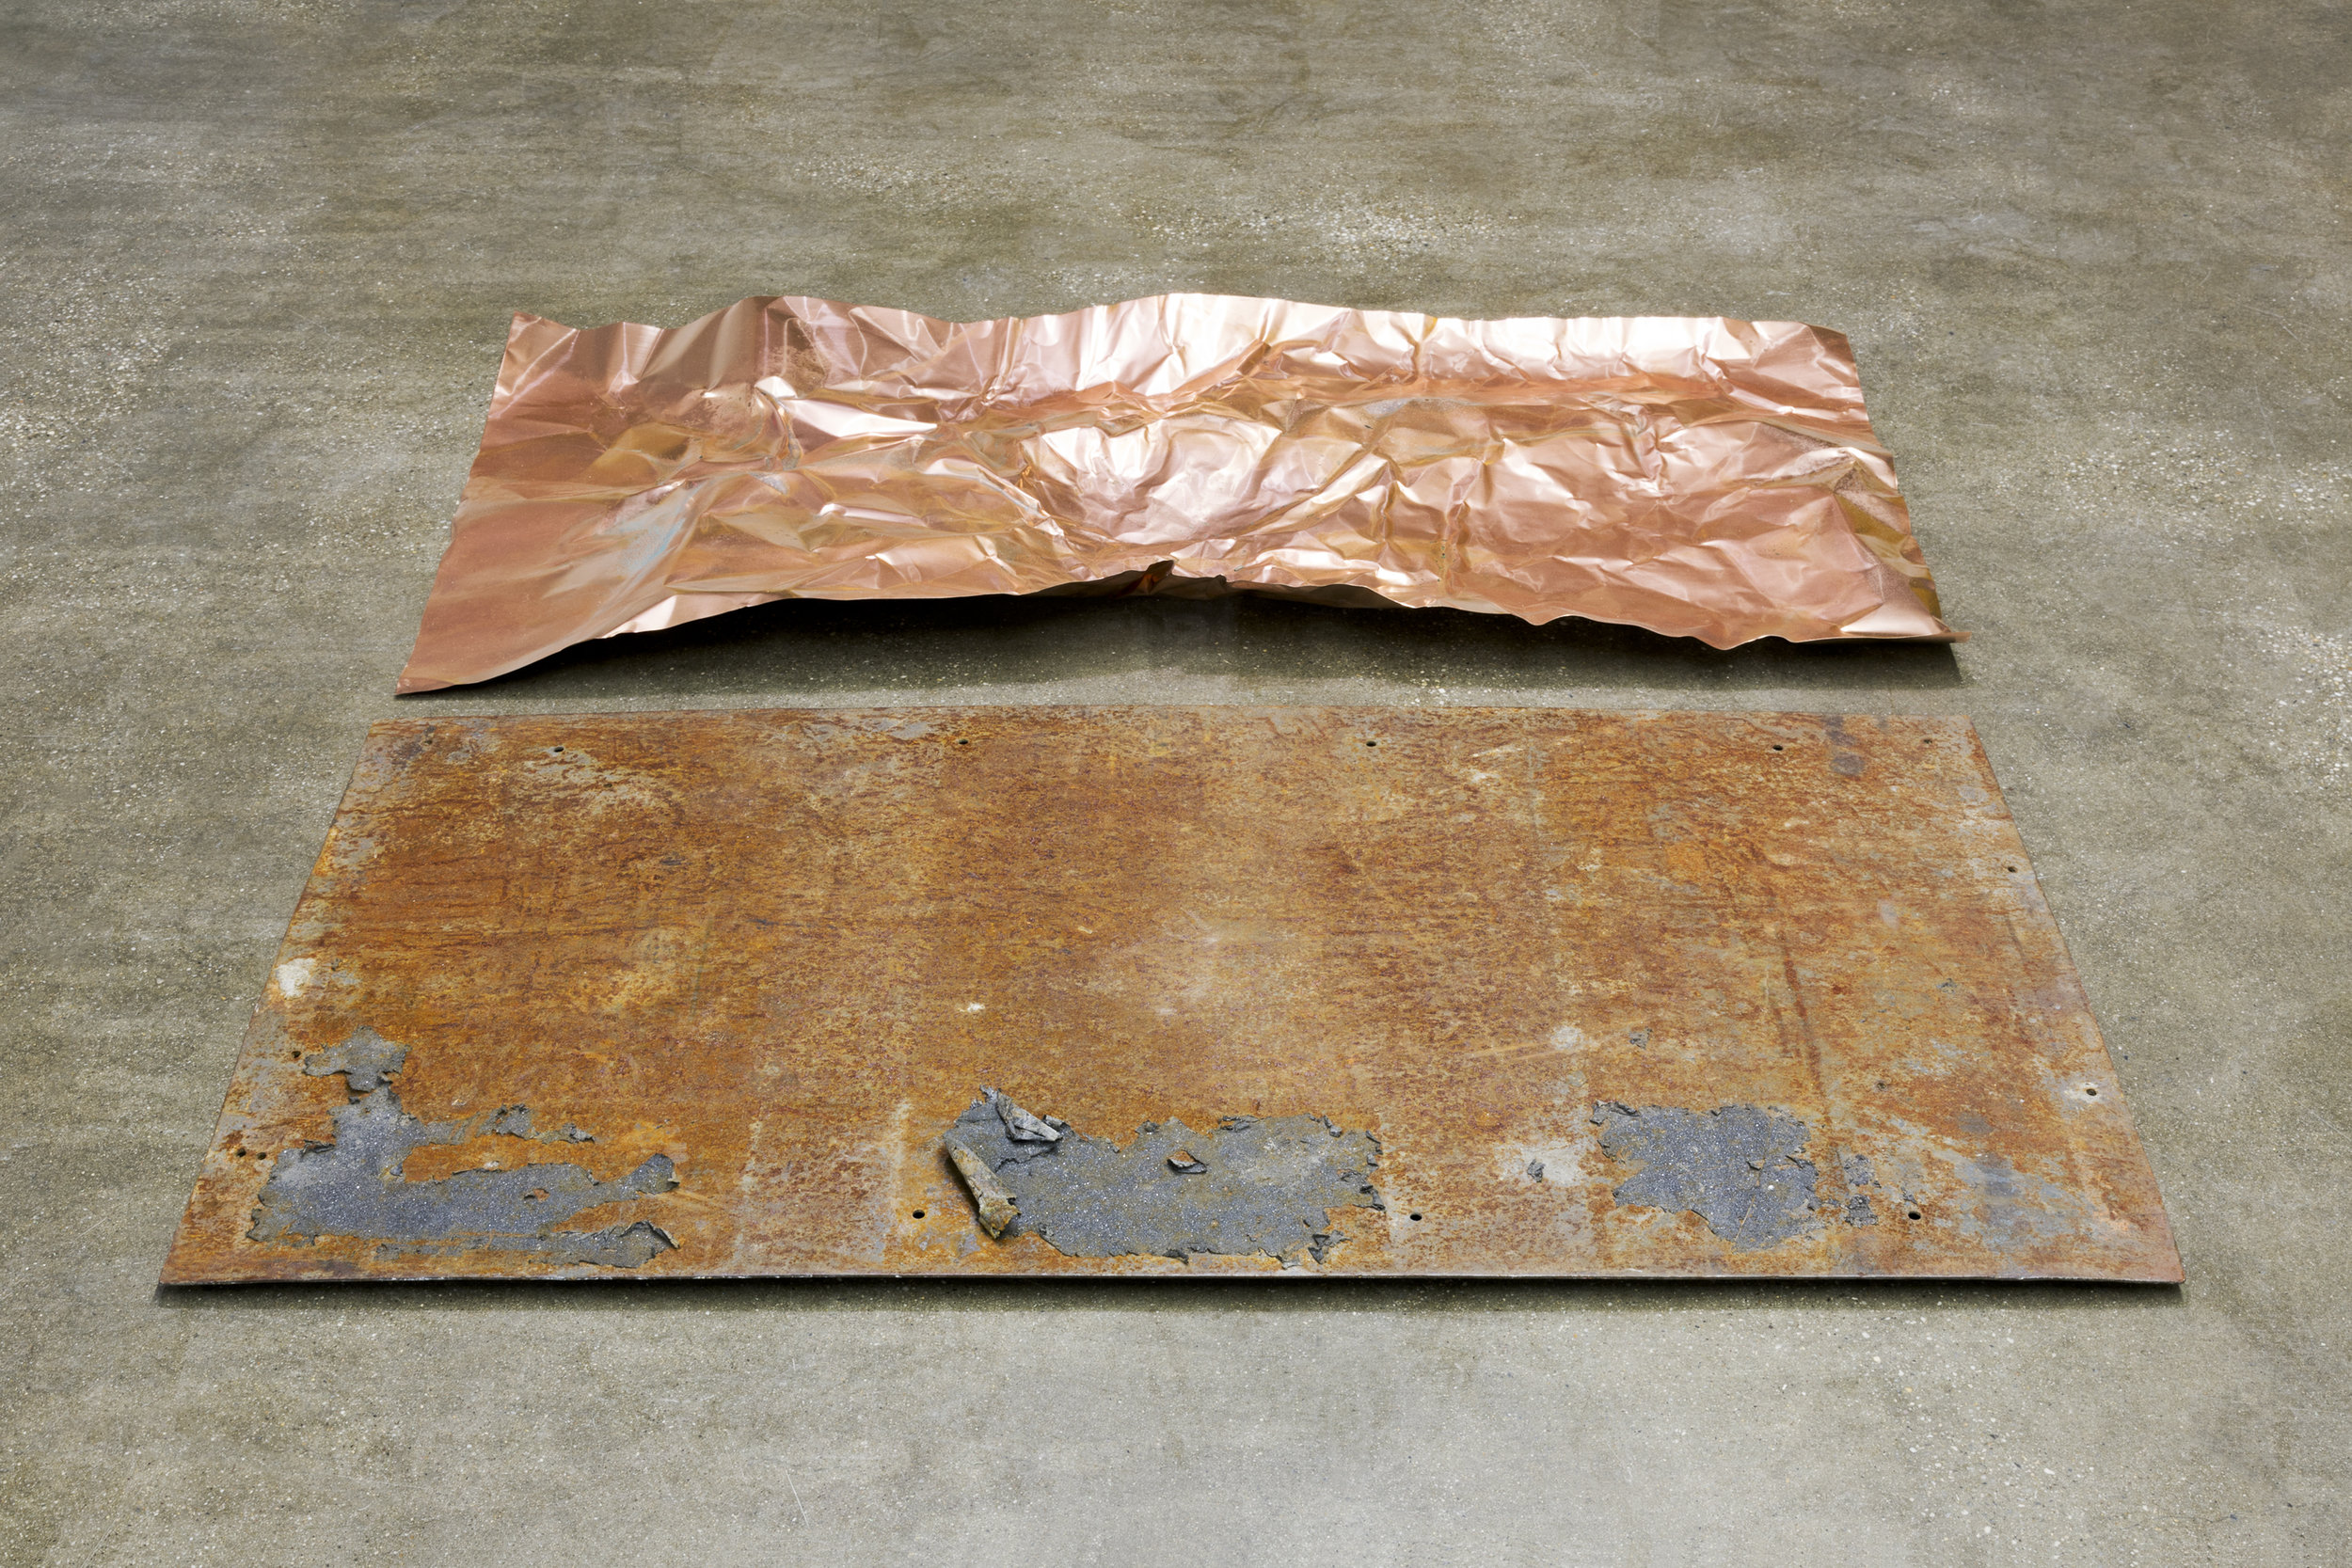 Hanging out  2018  Works in collaboration with  Kristine Eudey   Video, foam, plastic sheeting, radio, PVC welding curtains, slept-on copper, vinegar, found steel